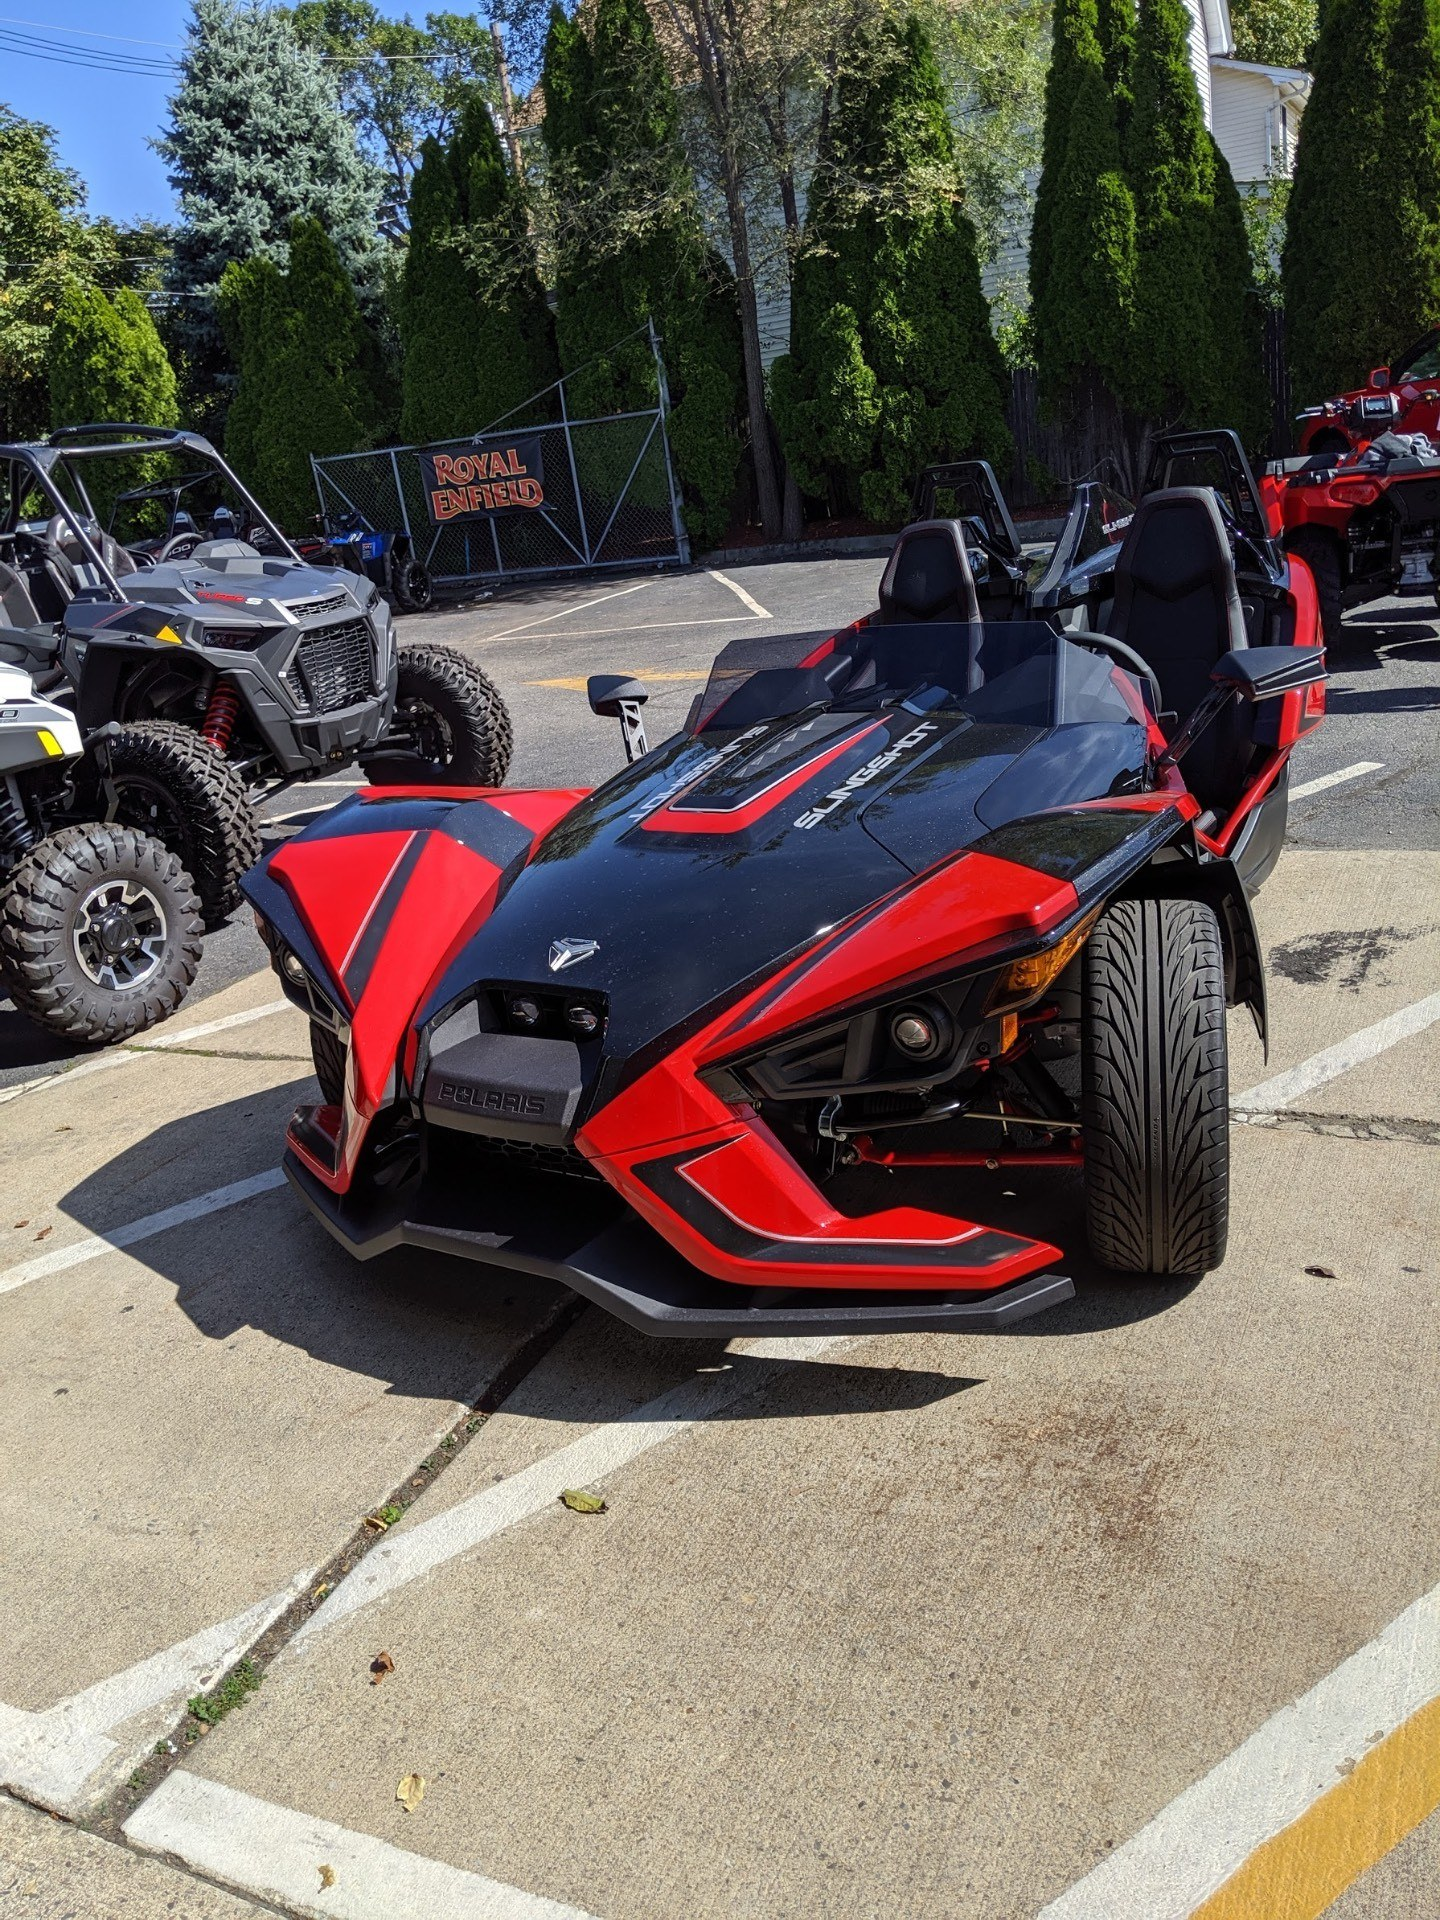 2019 Slingshot Slingshot SLR in Mahwah, New Jersey - Photo 3